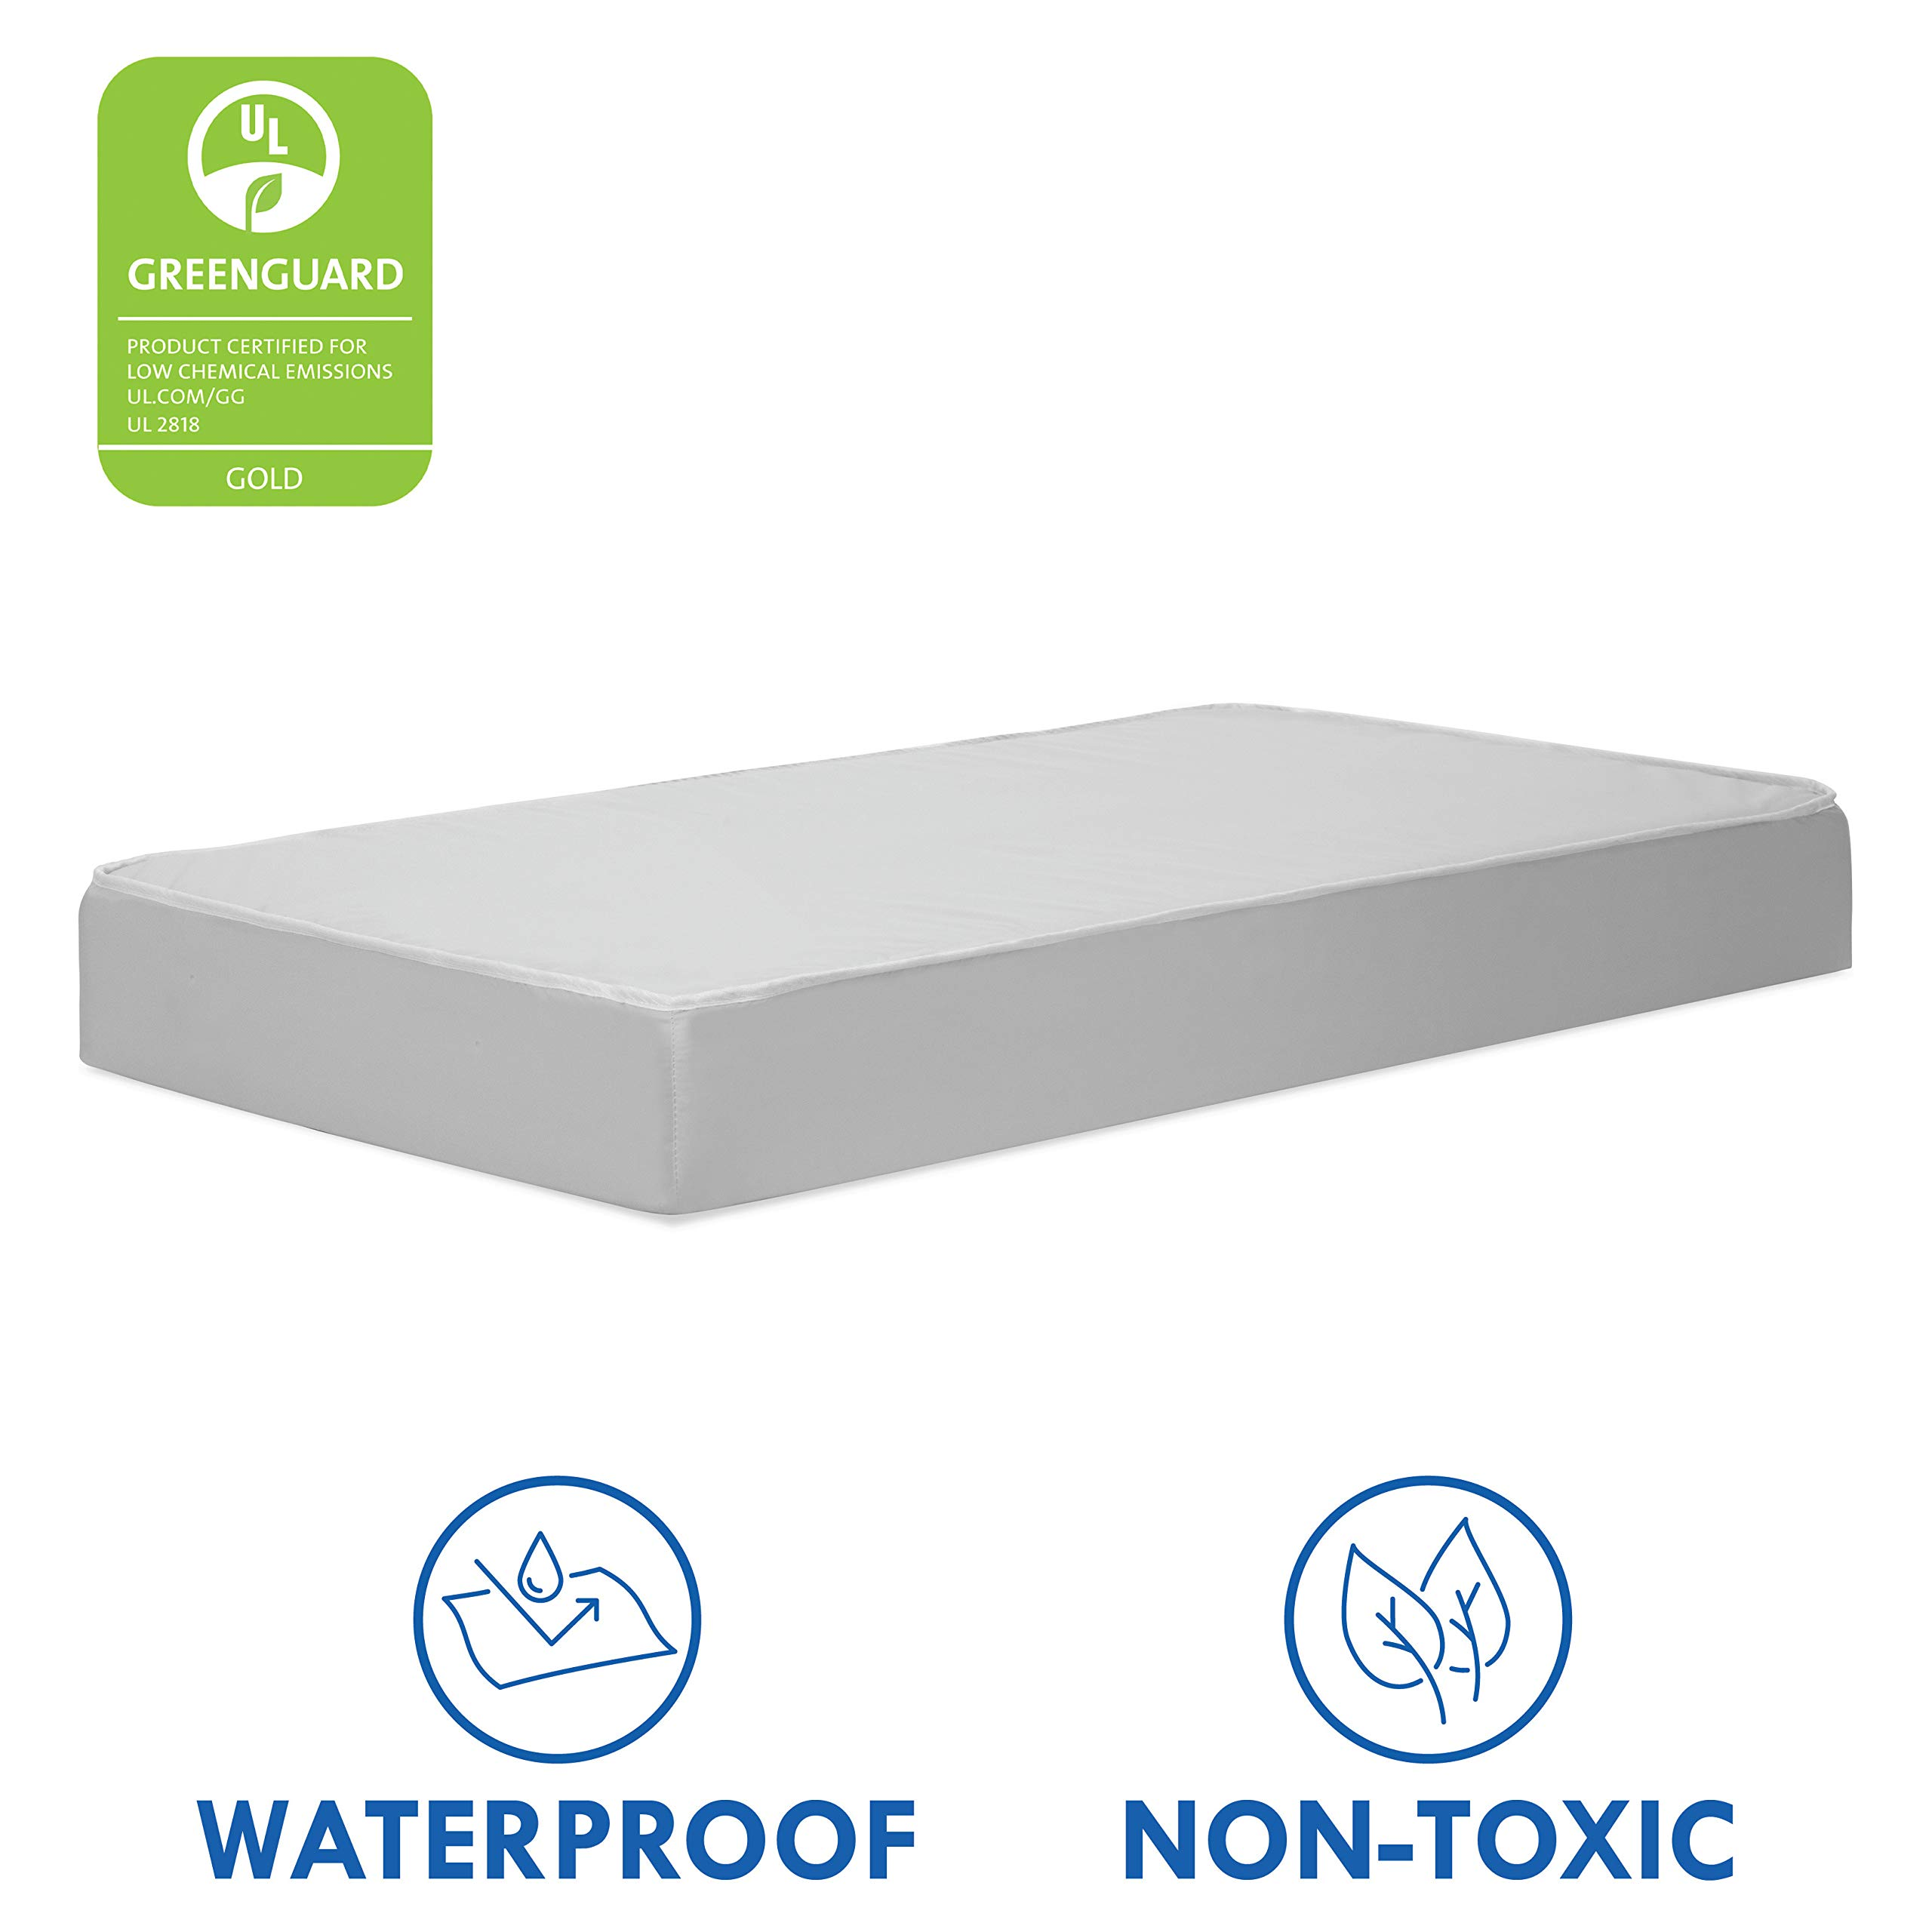 DaVinci Deluxe Coil Waterproof Dual-sided Crib & Toddler Mattress | Extra Firm | GREENGUARD Gold Certified | 100% Non-Toxic by DaVinci